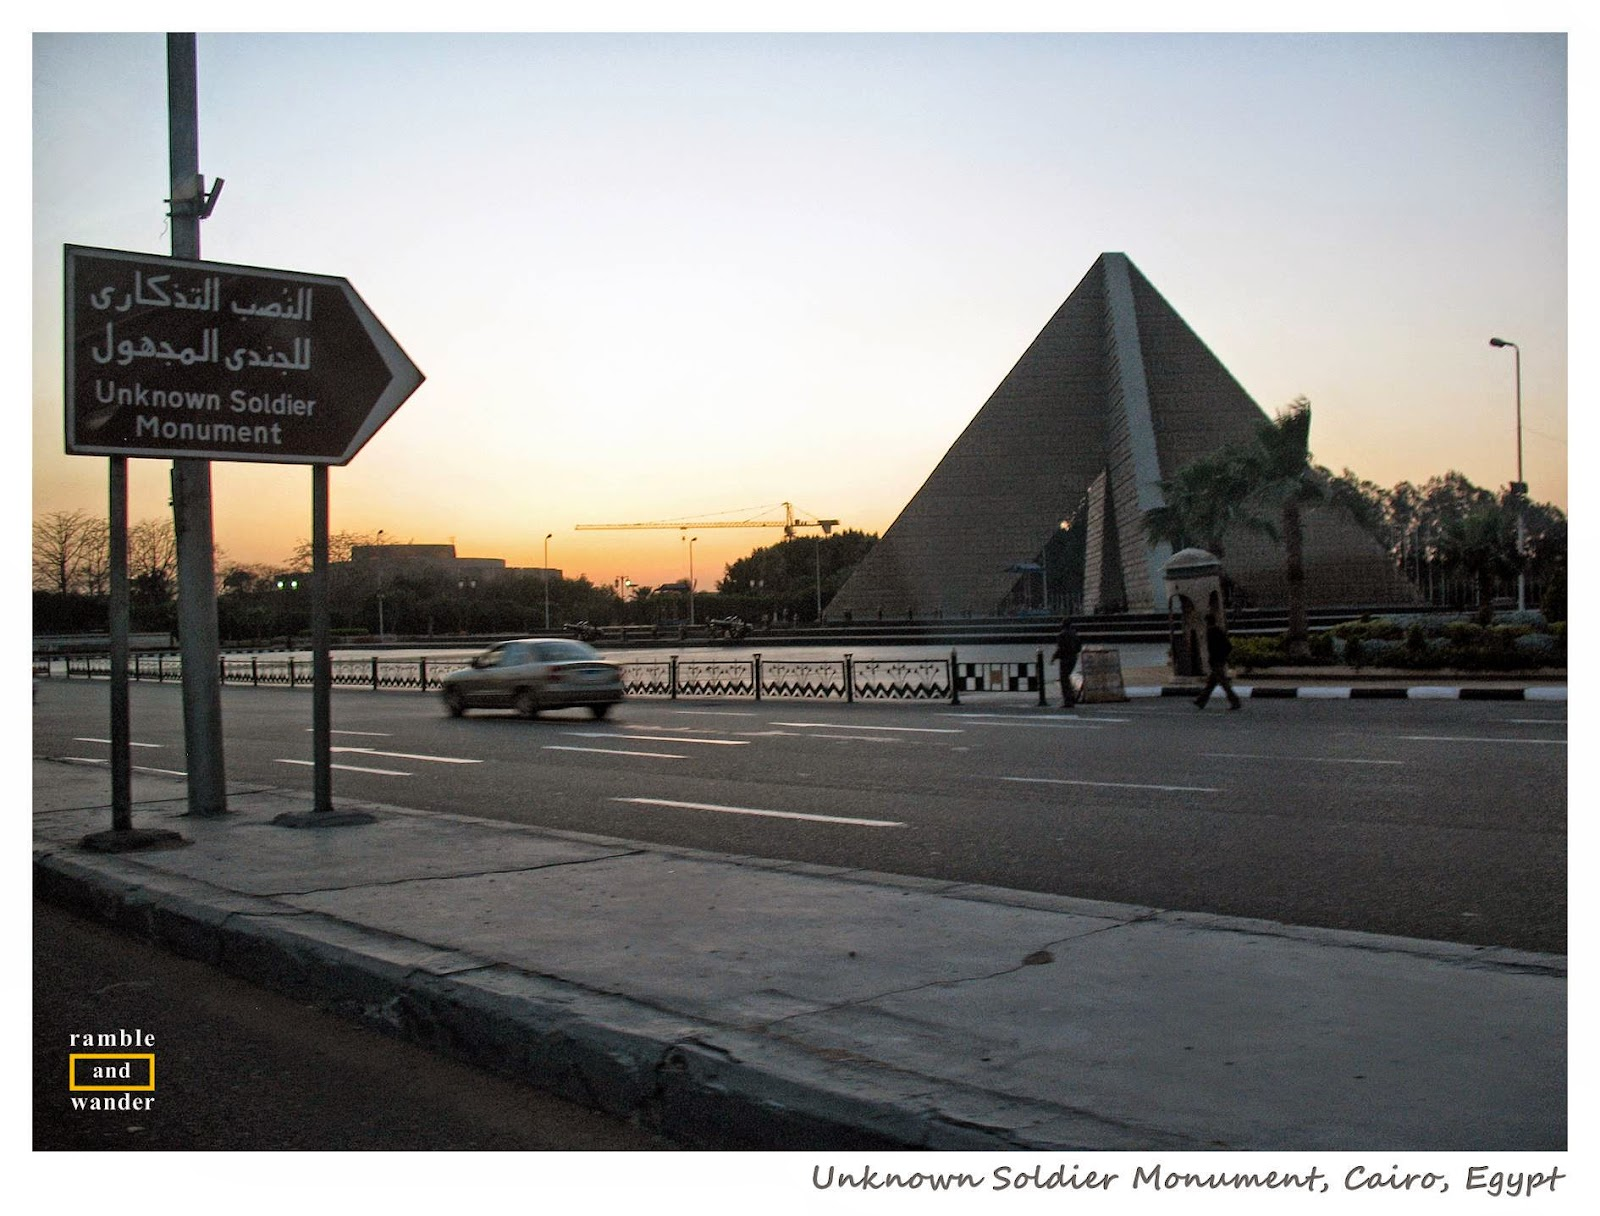 Unknown Soldier Monument, Cairo, Egypt